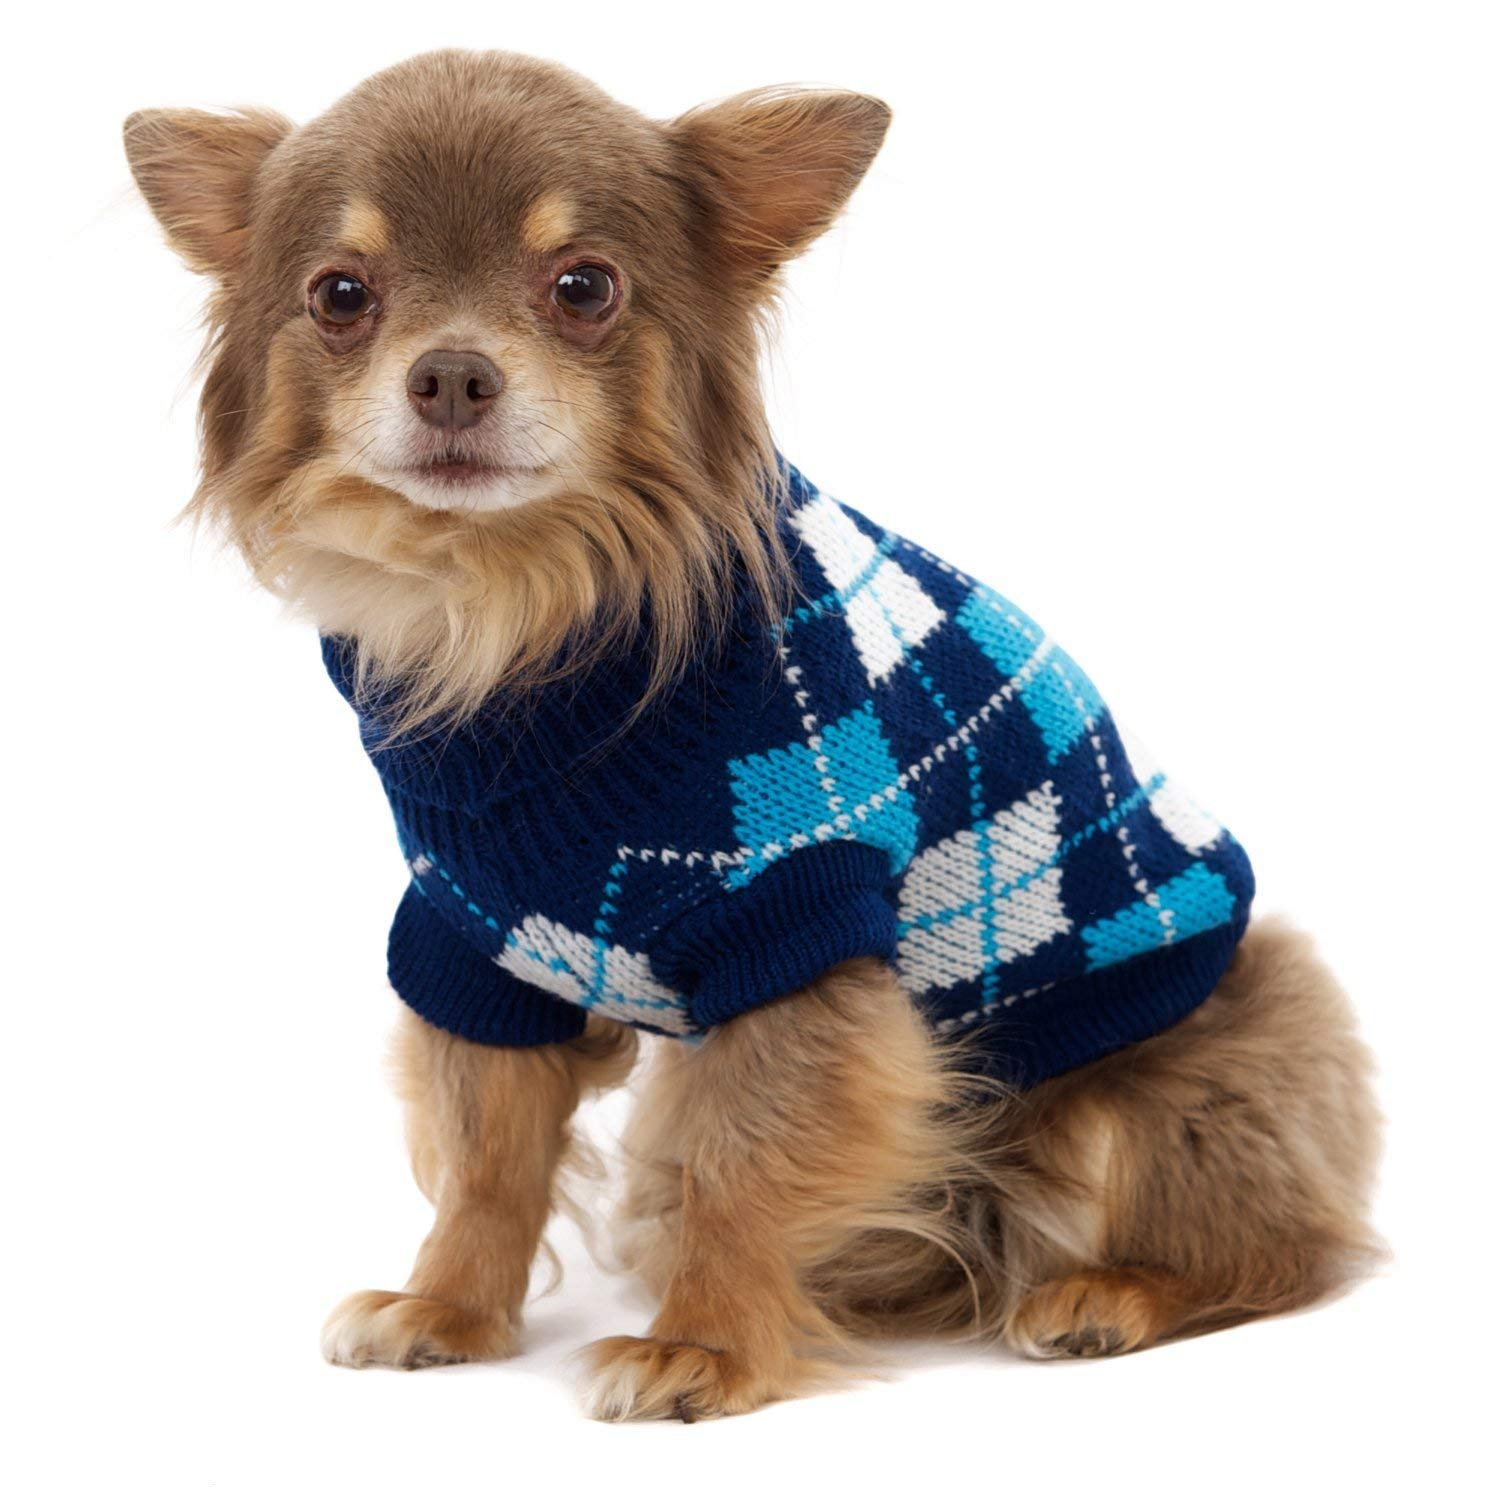 "UrbanPup Blue Argyle Sweater (X-Small - Dog Body Length: 8"" / 20cm)"